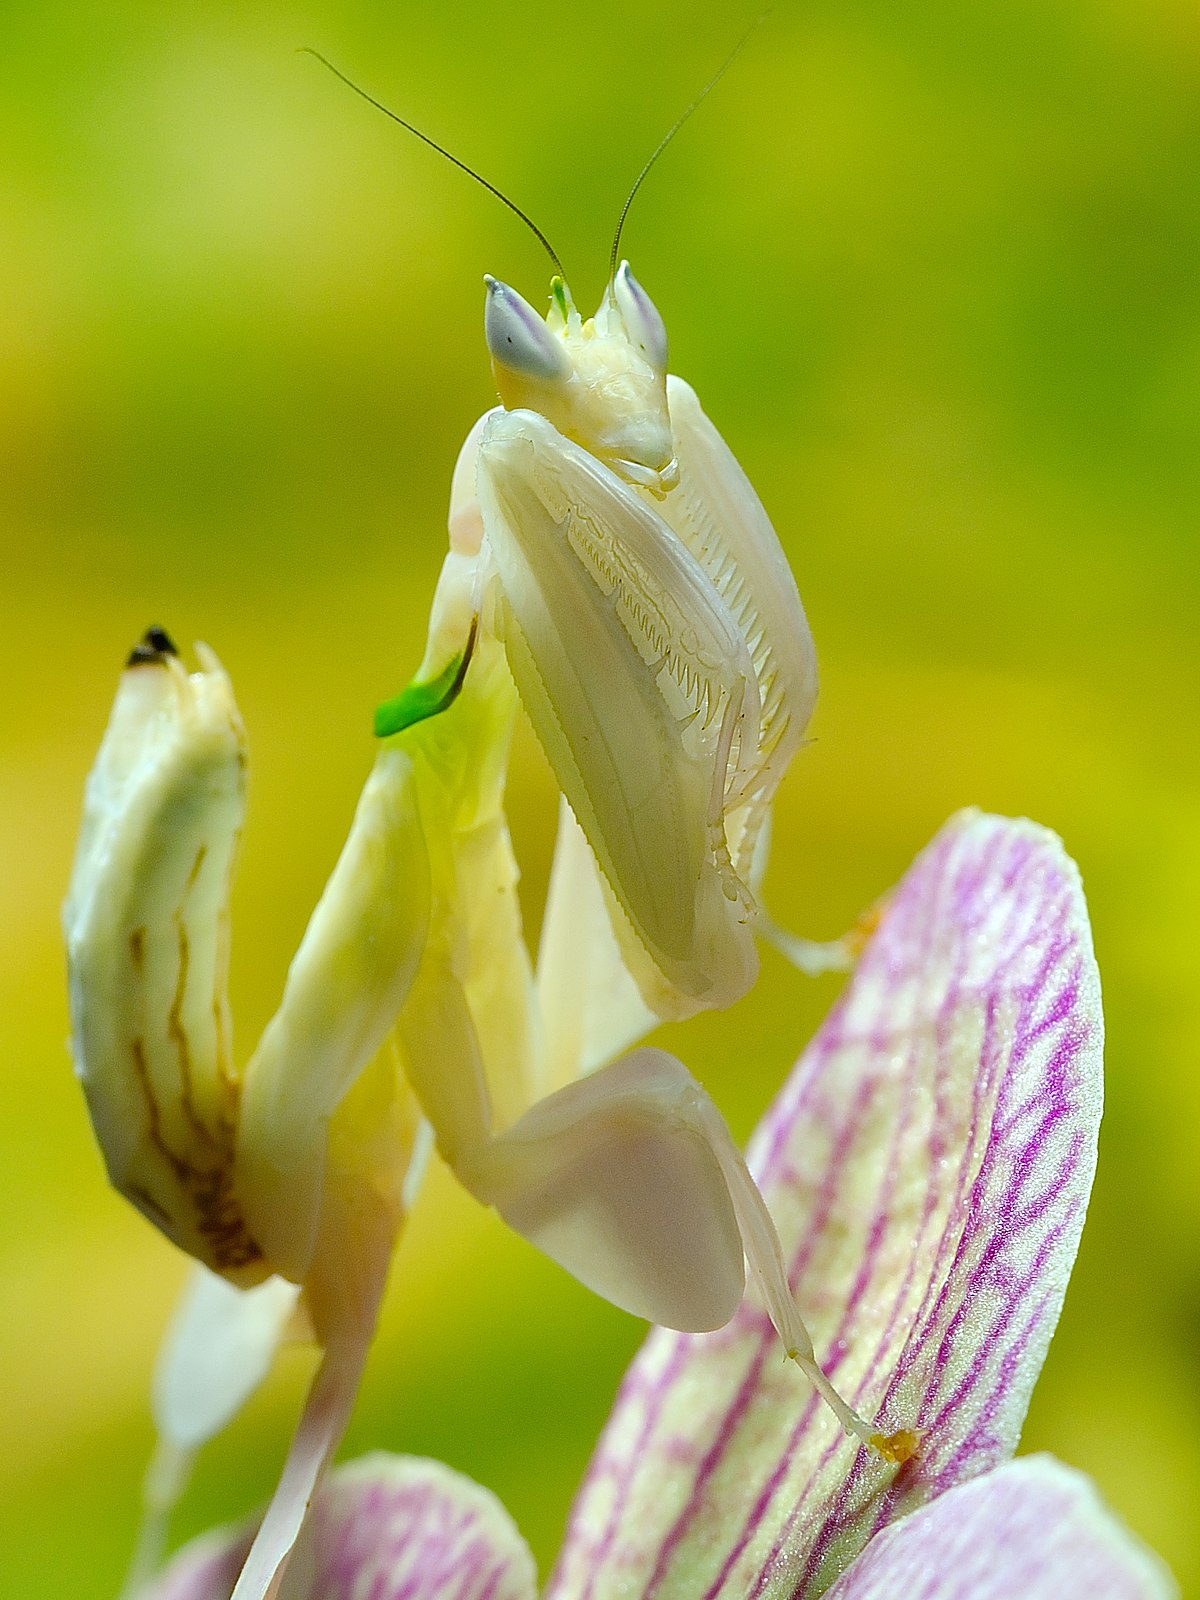 Flower mantis - Wikipedia